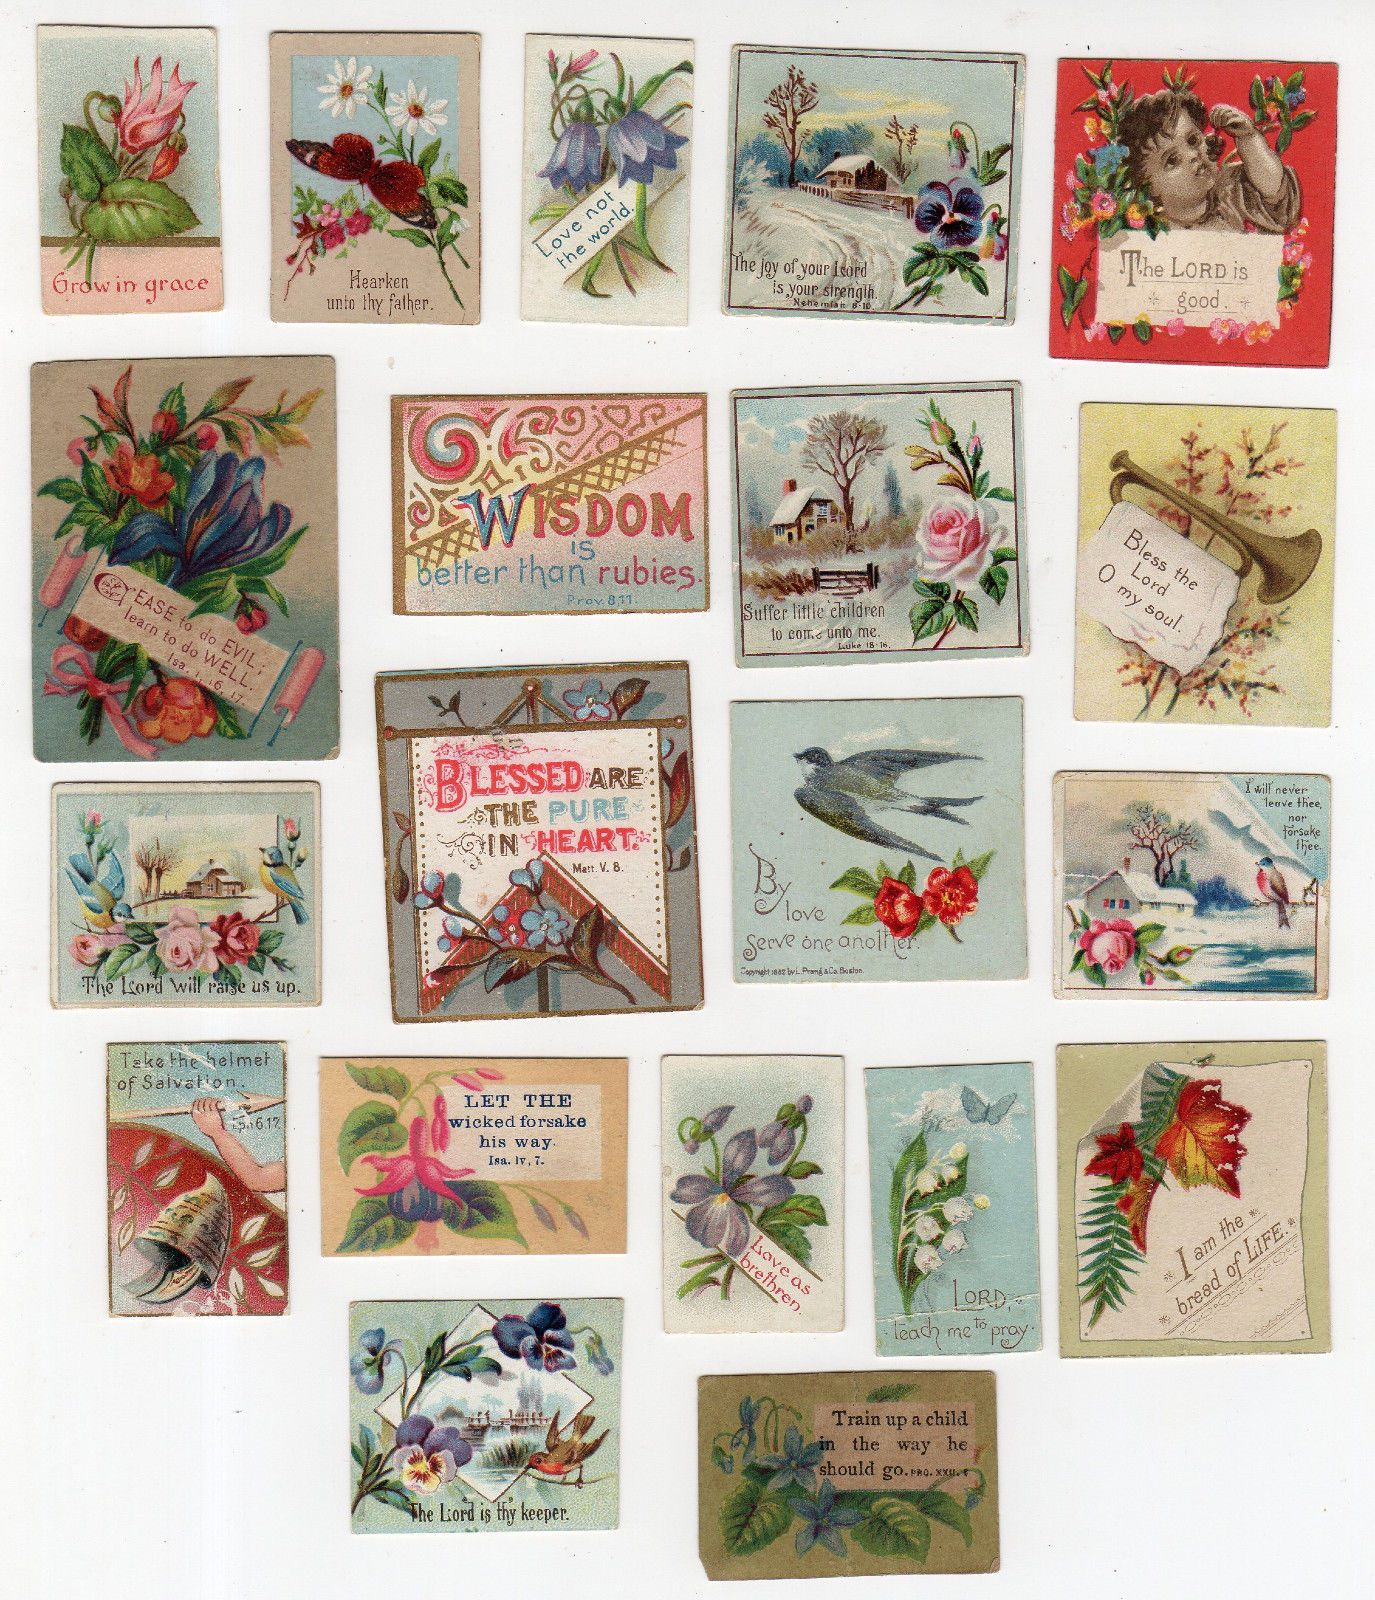 20 Miniature Religious Victorian Cards With Bible Verses And